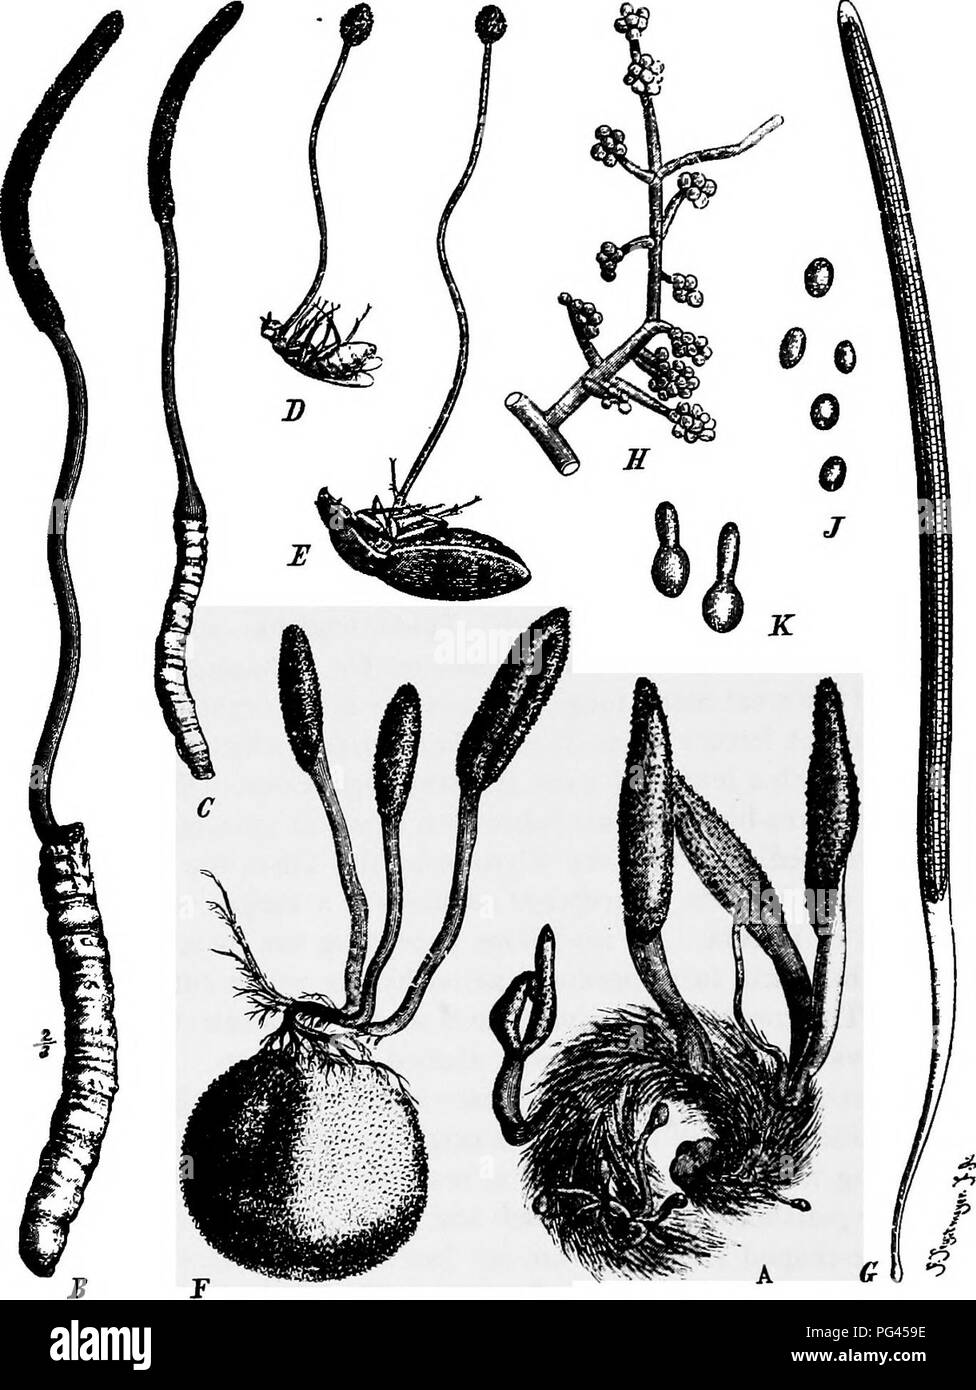 . A text-book of mycology and plant pathology . Plant diseases; Fungi in agriculture; Plant diseases; Fungi. 7° MYCOI-OGY. Fig. 21.—A Cordyceps militaris; B, Cordyceps Hiigelii on a caterpillar; D, Cordy- ' ceps sphterocephala on a wasp; E, Cordyceps cinerea on a beetle; F—K, Cordyceps ophioglossoides, F on a deer truffle; G, ascus; H, conidiophore; J, conidiospores; K, germinating spore. See Die nalurlichen Pflanzenfamilien I. i, p. 368.. Please note that these images are extracted from scanned page images that may have been digitally enhanced for readability - coloration and appearance of th - Stock Image